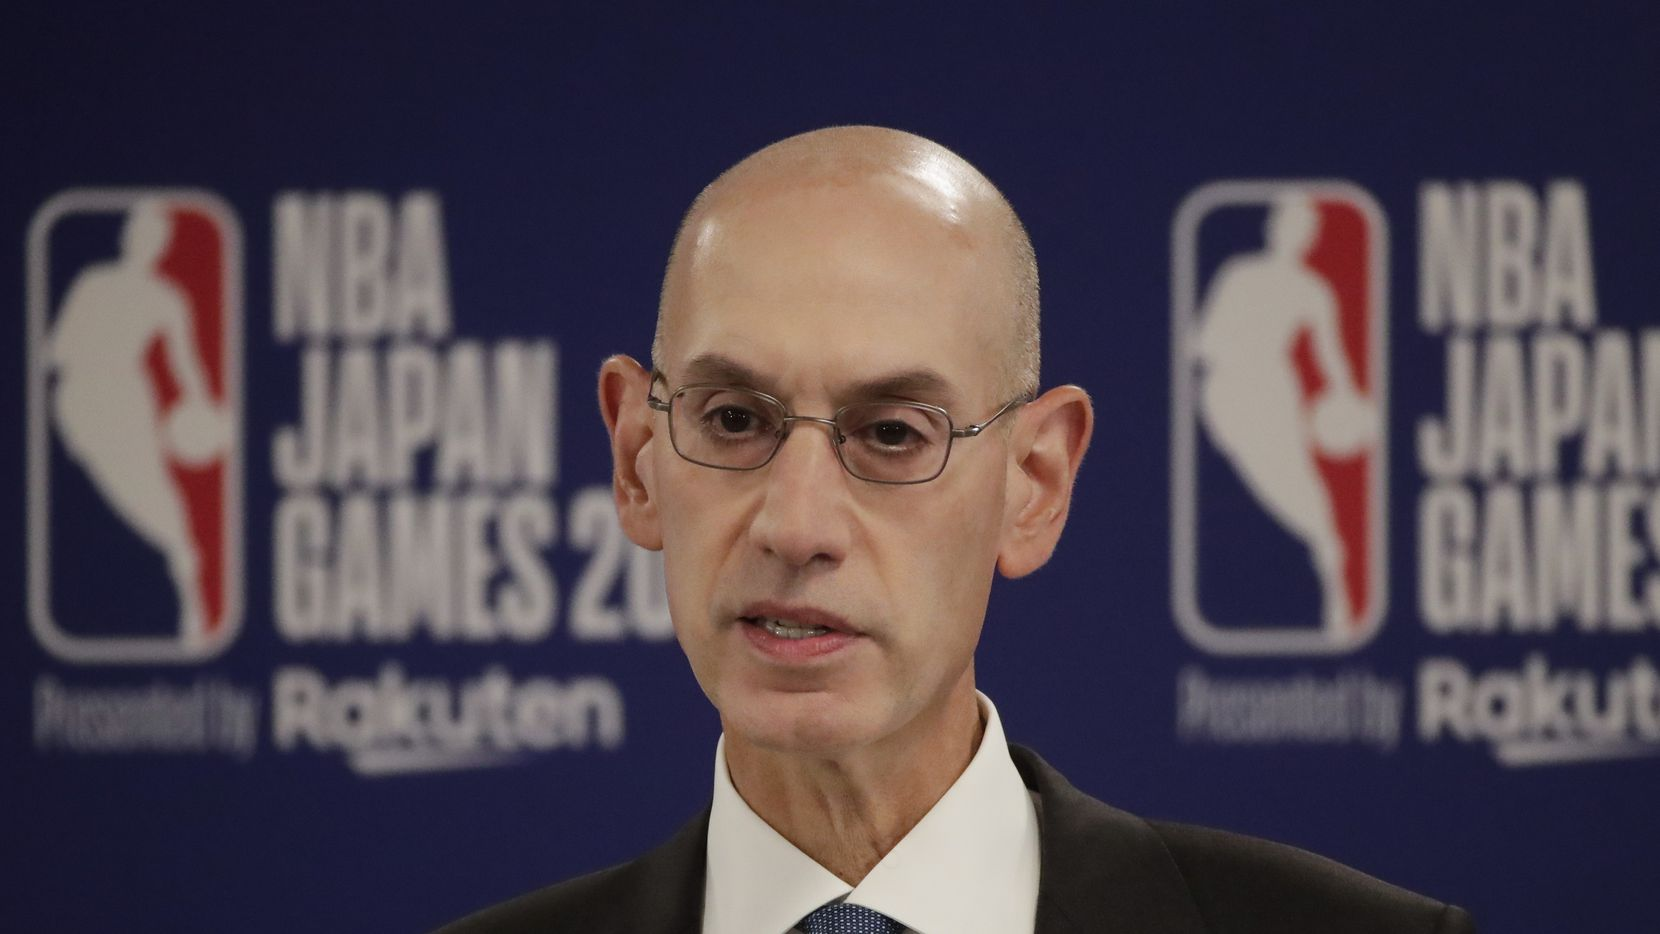 FILE - In this Oct. 8, 2019 file photo, NBA Commissioner Adam Silver speaks at a news conference before an NBA preseason basketball game between the Houston Rockets and the Toronto Raptors in Saitama, near Tokyo. When major corporations have angered Chinese authorities in recent years, the playbook calls for one thing: an apology.  The NBA, with billions at stake, has resisted that for now, though some experts wonder if such a move is inevitable.